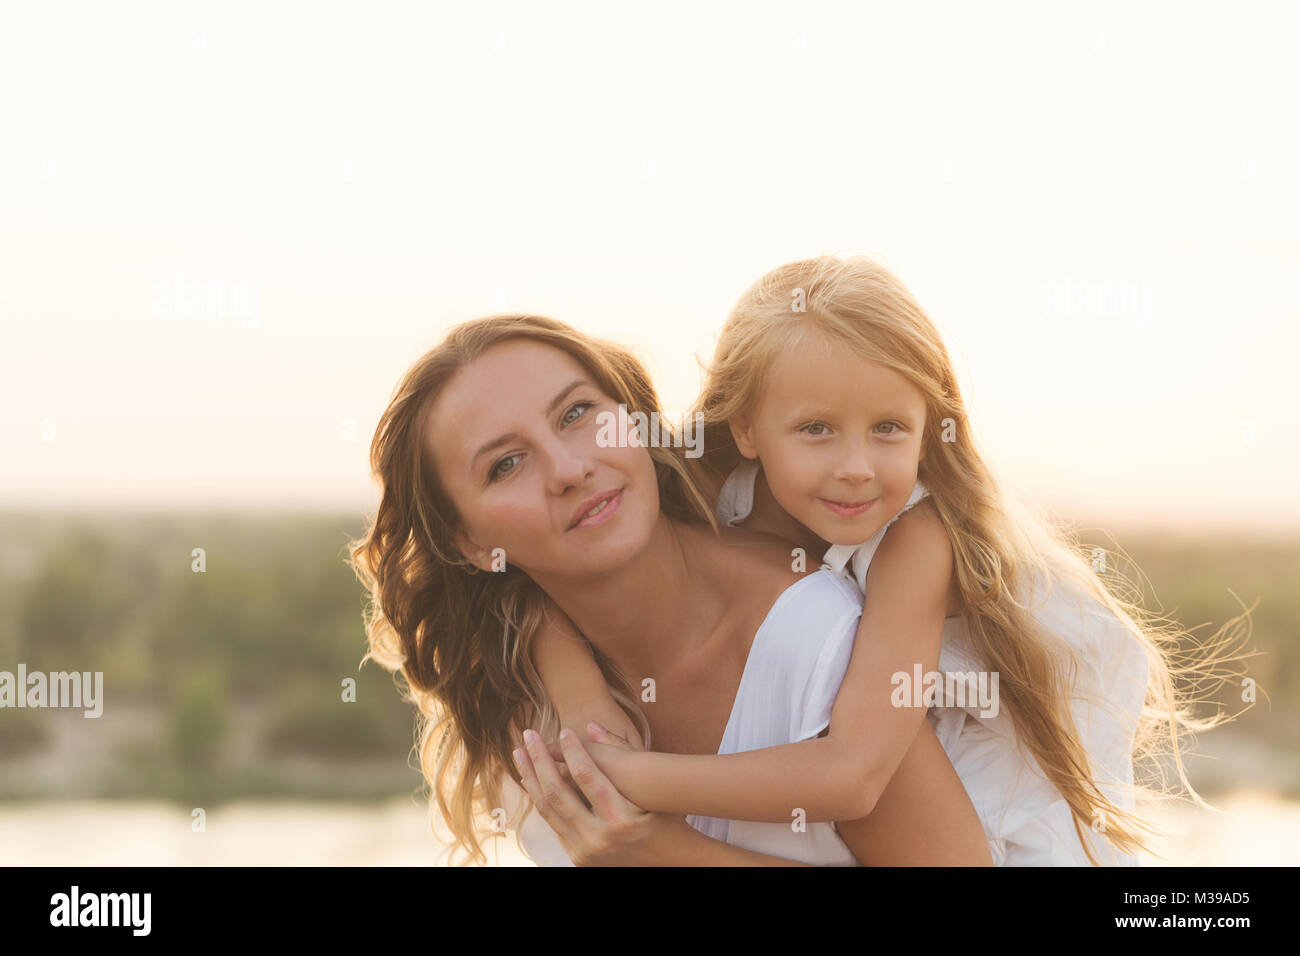 Family, mother and daughter. Girl Piggyback Daughter. Girls in white dresses. They are blondes. Family time together. - Stock Image